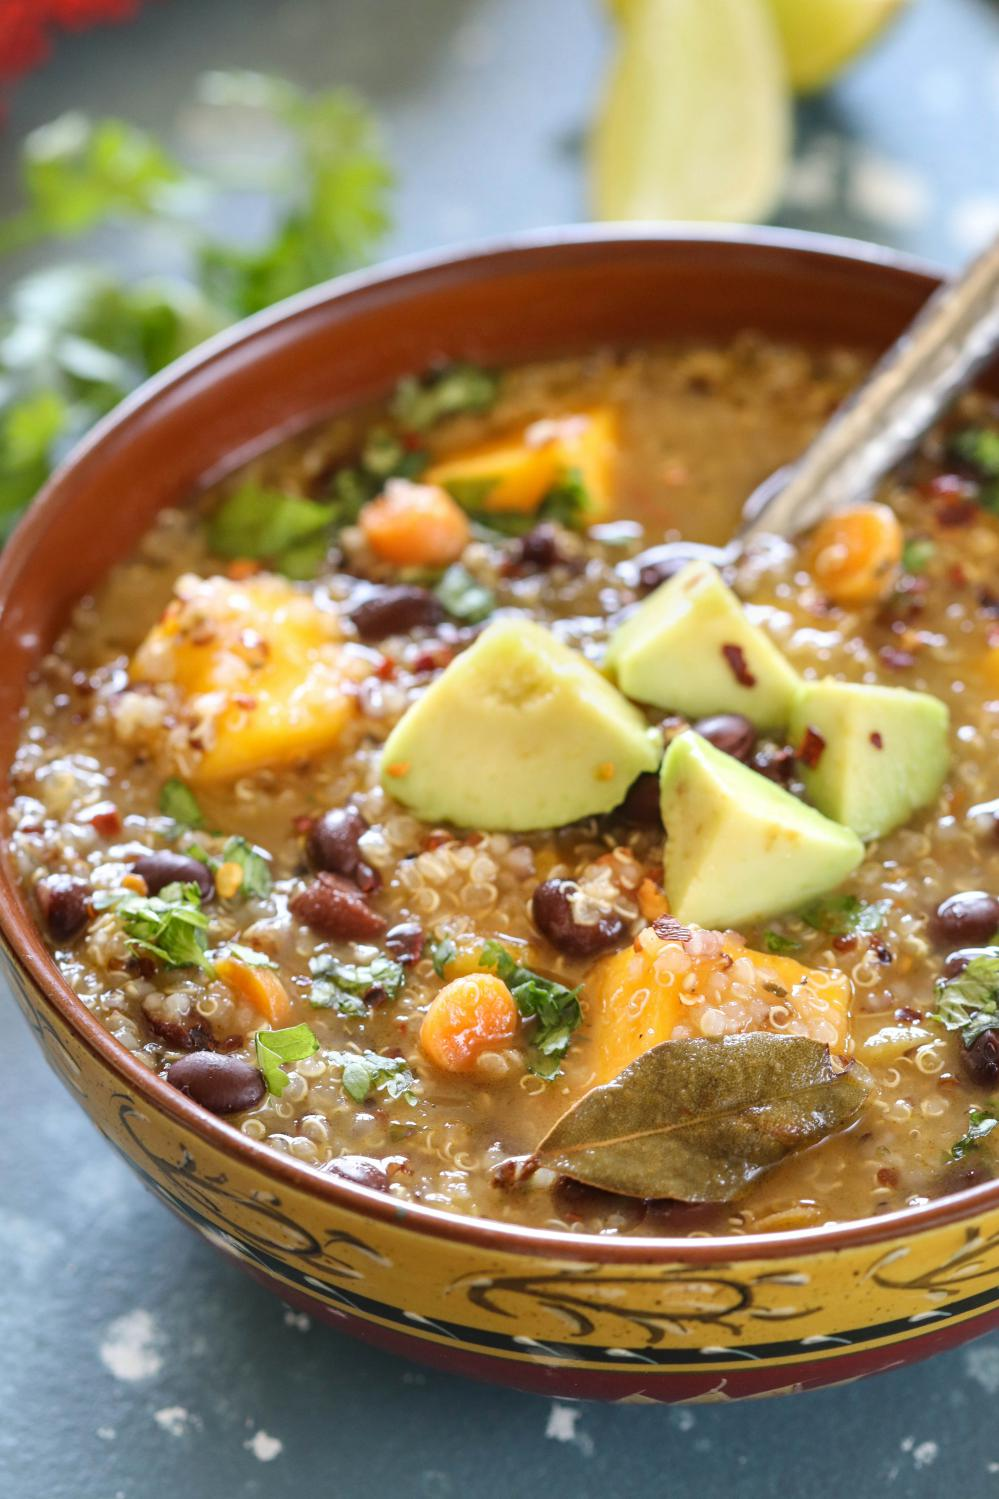 Instant Pot Butternut Squash And Quinoa Stew- Ruchiskitchen